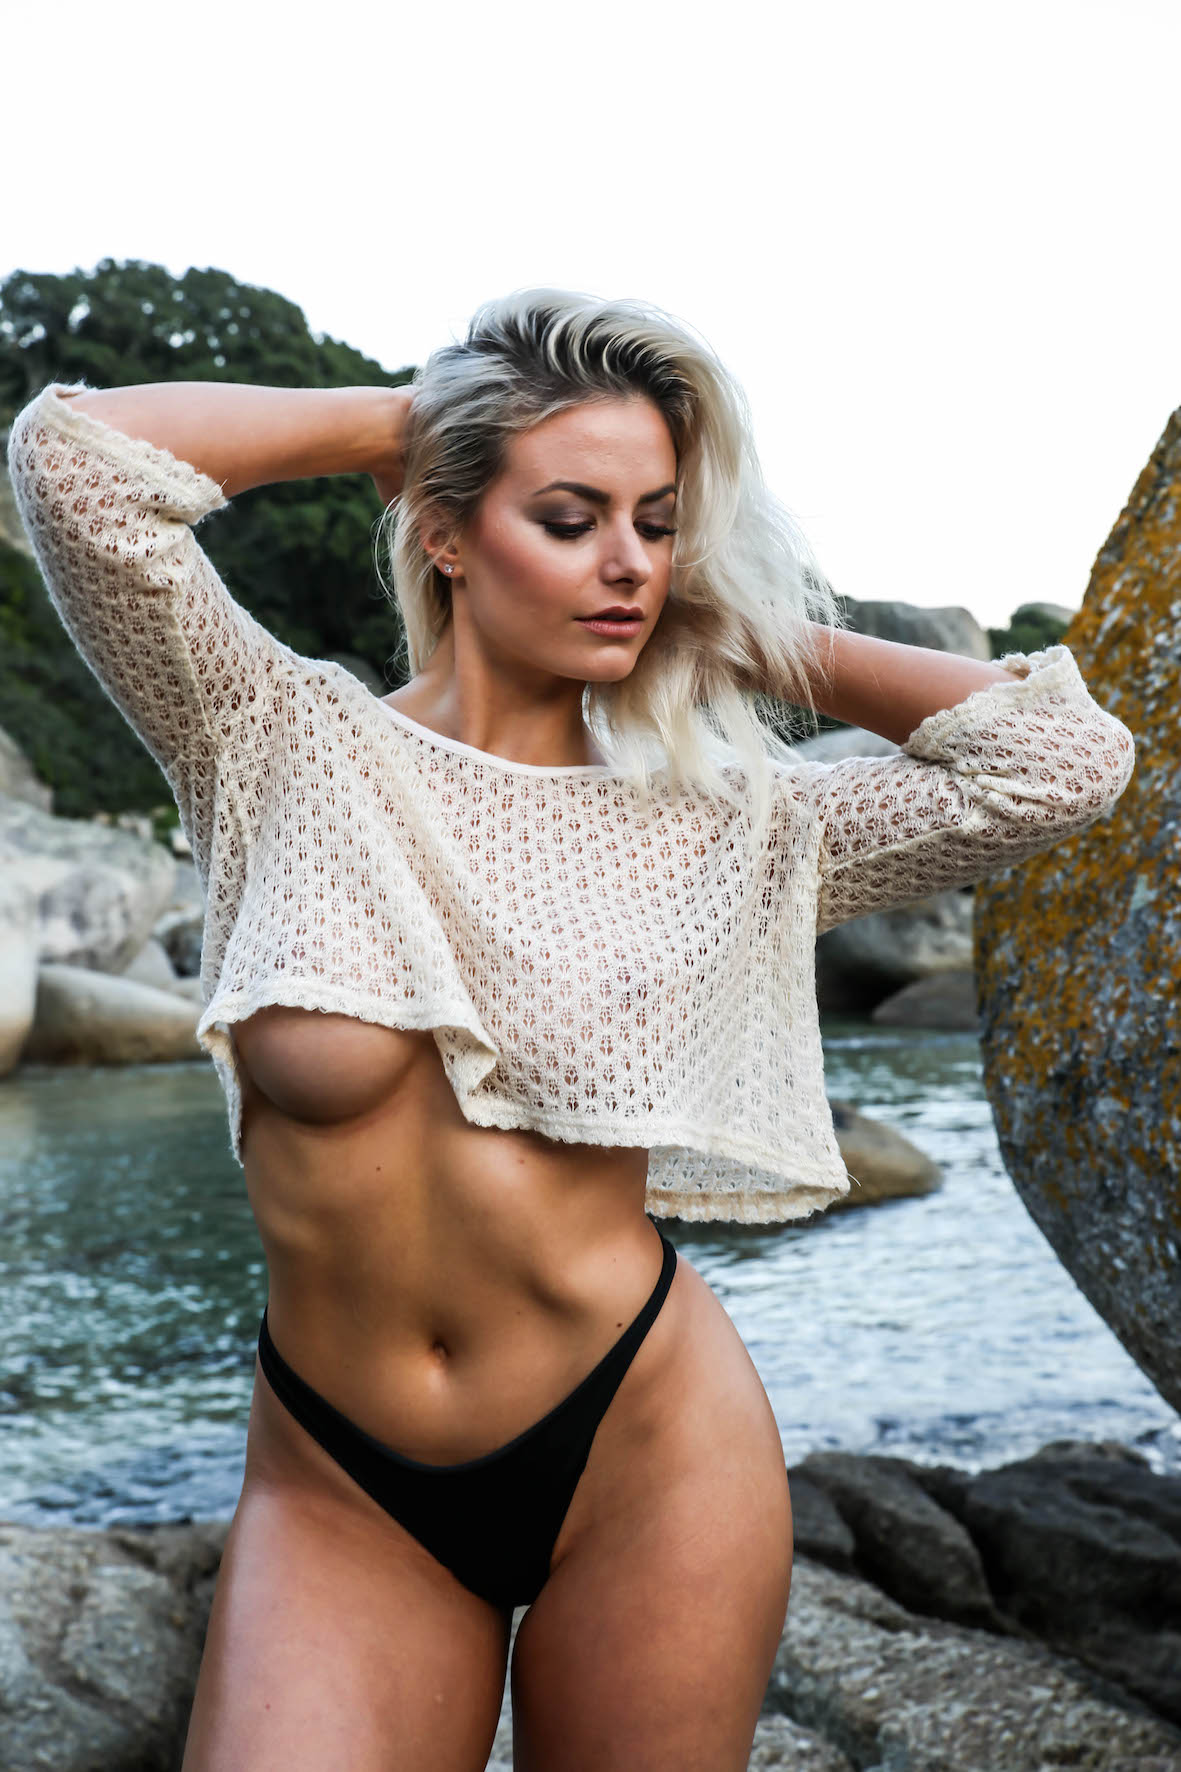 Our SA Babes feature with Emma Jooste